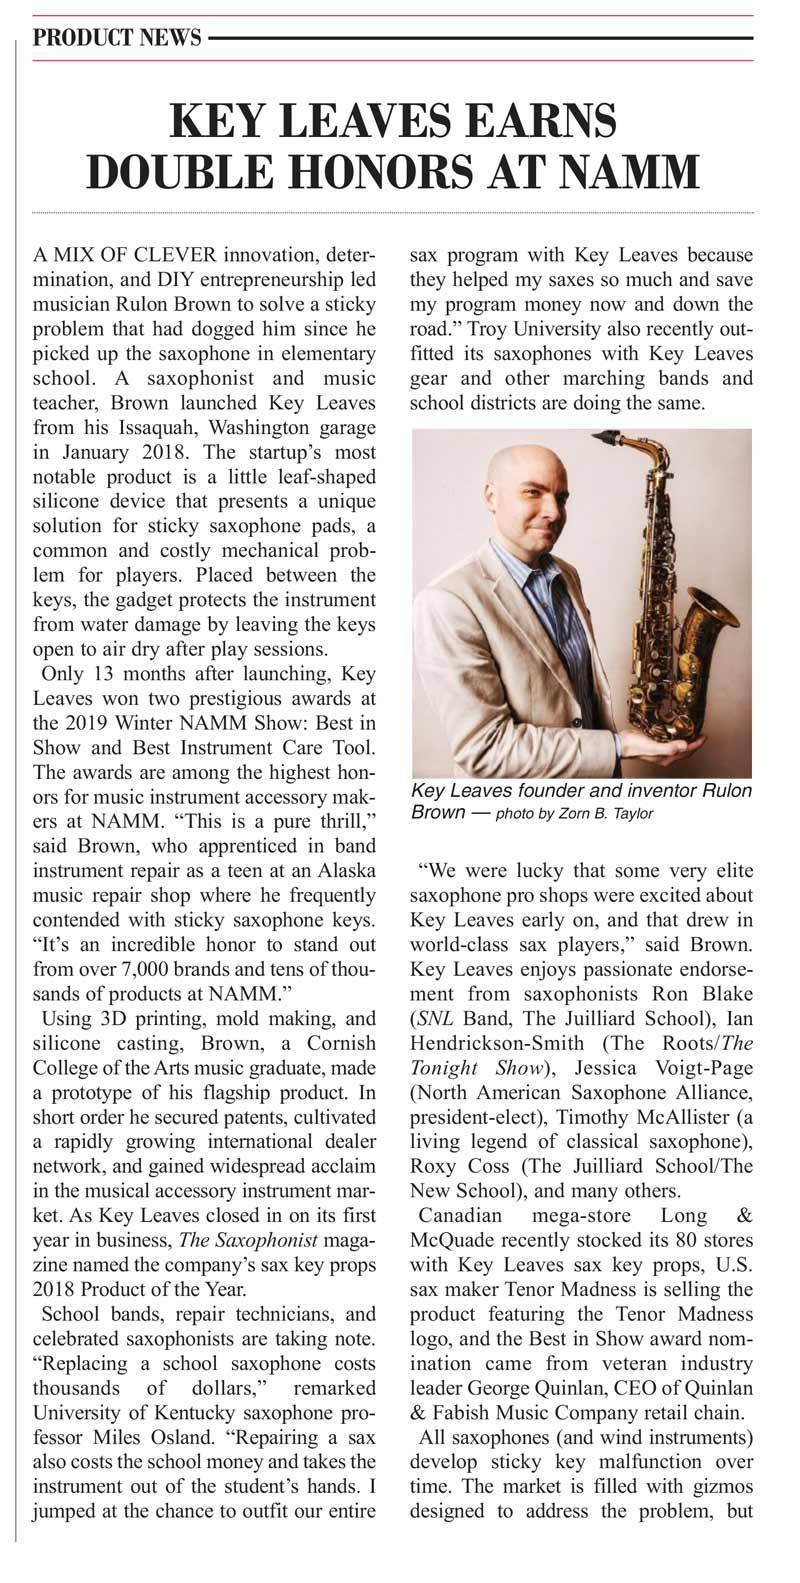 Key Leaves saxophone cleaning products featured in Music Trades Magazine